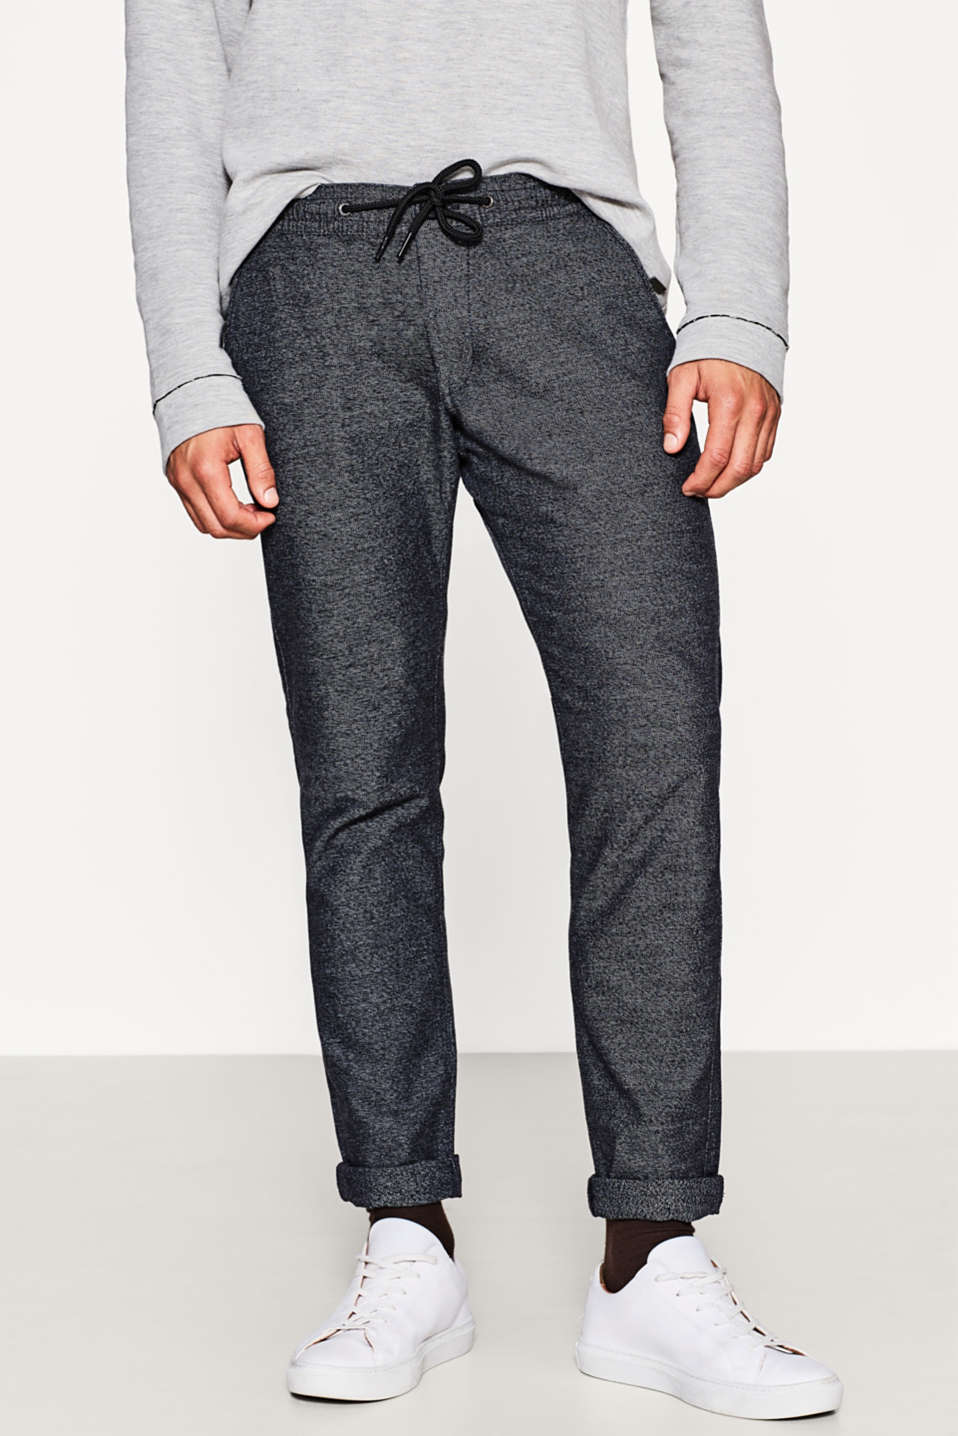 edc - Pantalon de jogging en coton stretch